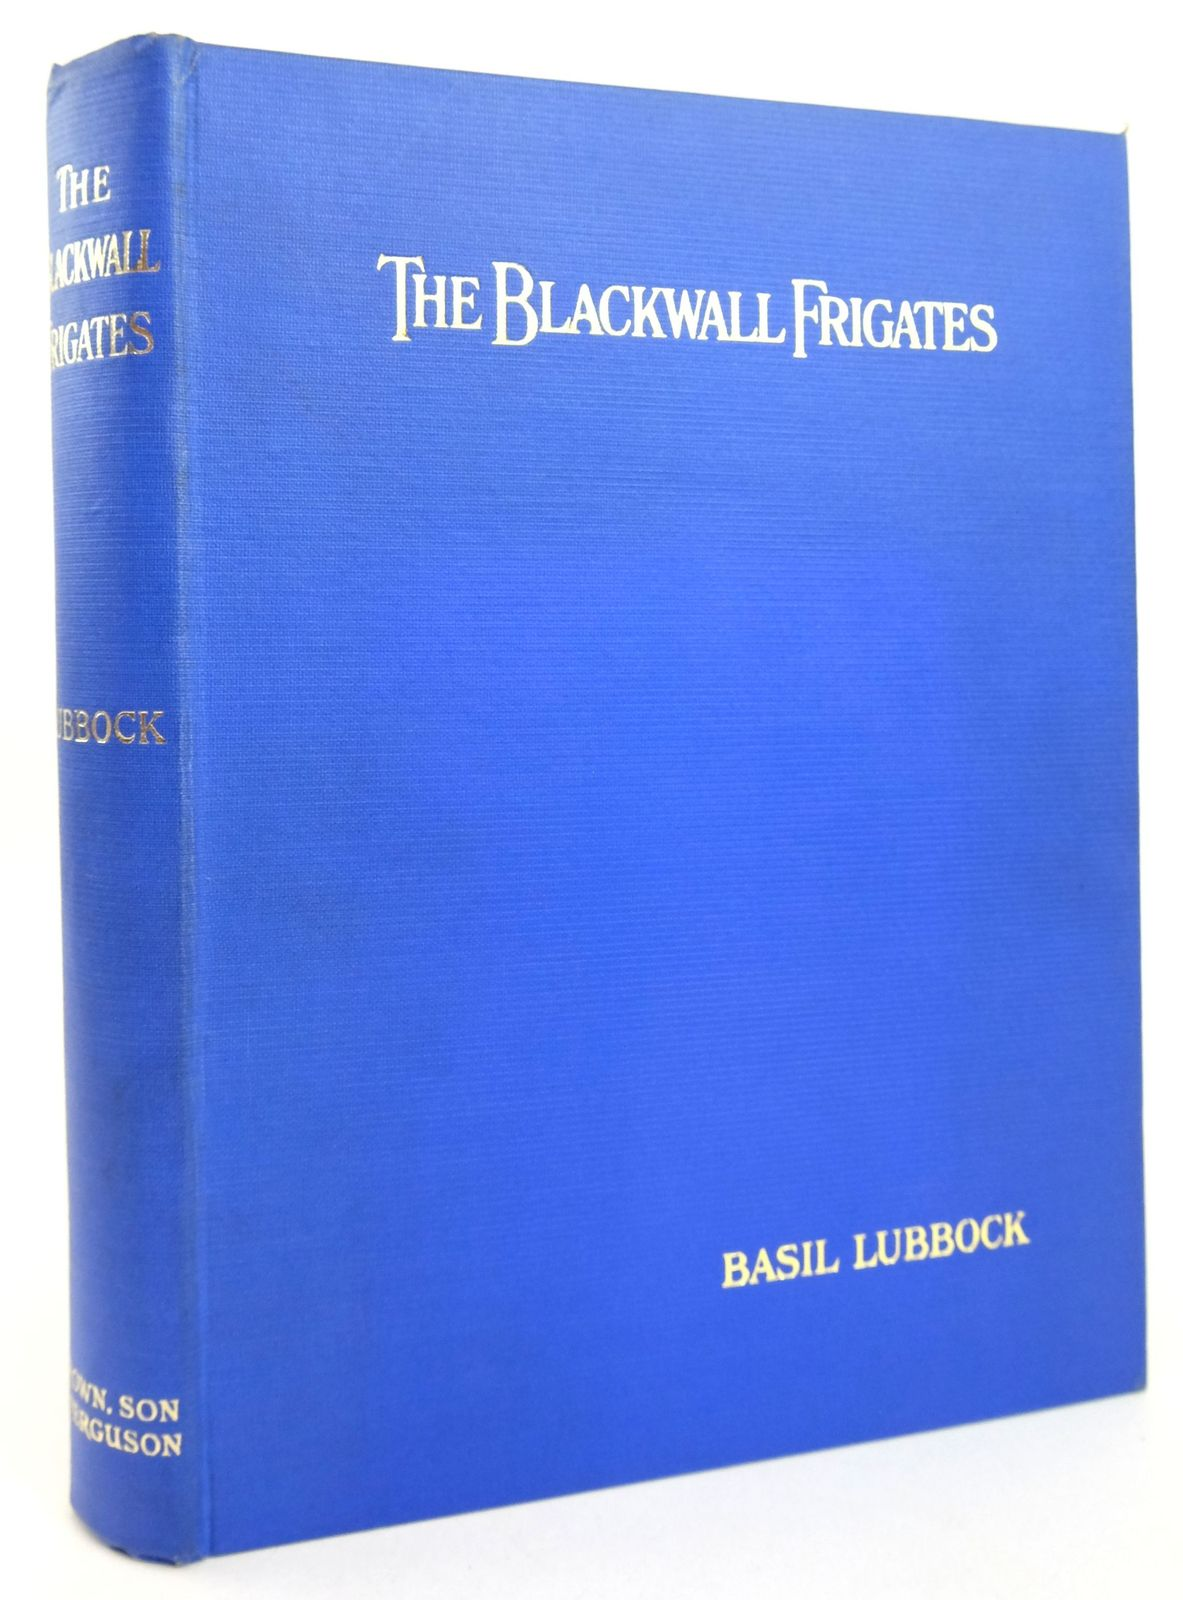 Photo of THE BLACKWALL FRIGATES written by Lubbock, Basil published by Brown, Son & Ferguson Ltd. (STOCK CODE: 1819340)  for sale by Stella & Rose's Books